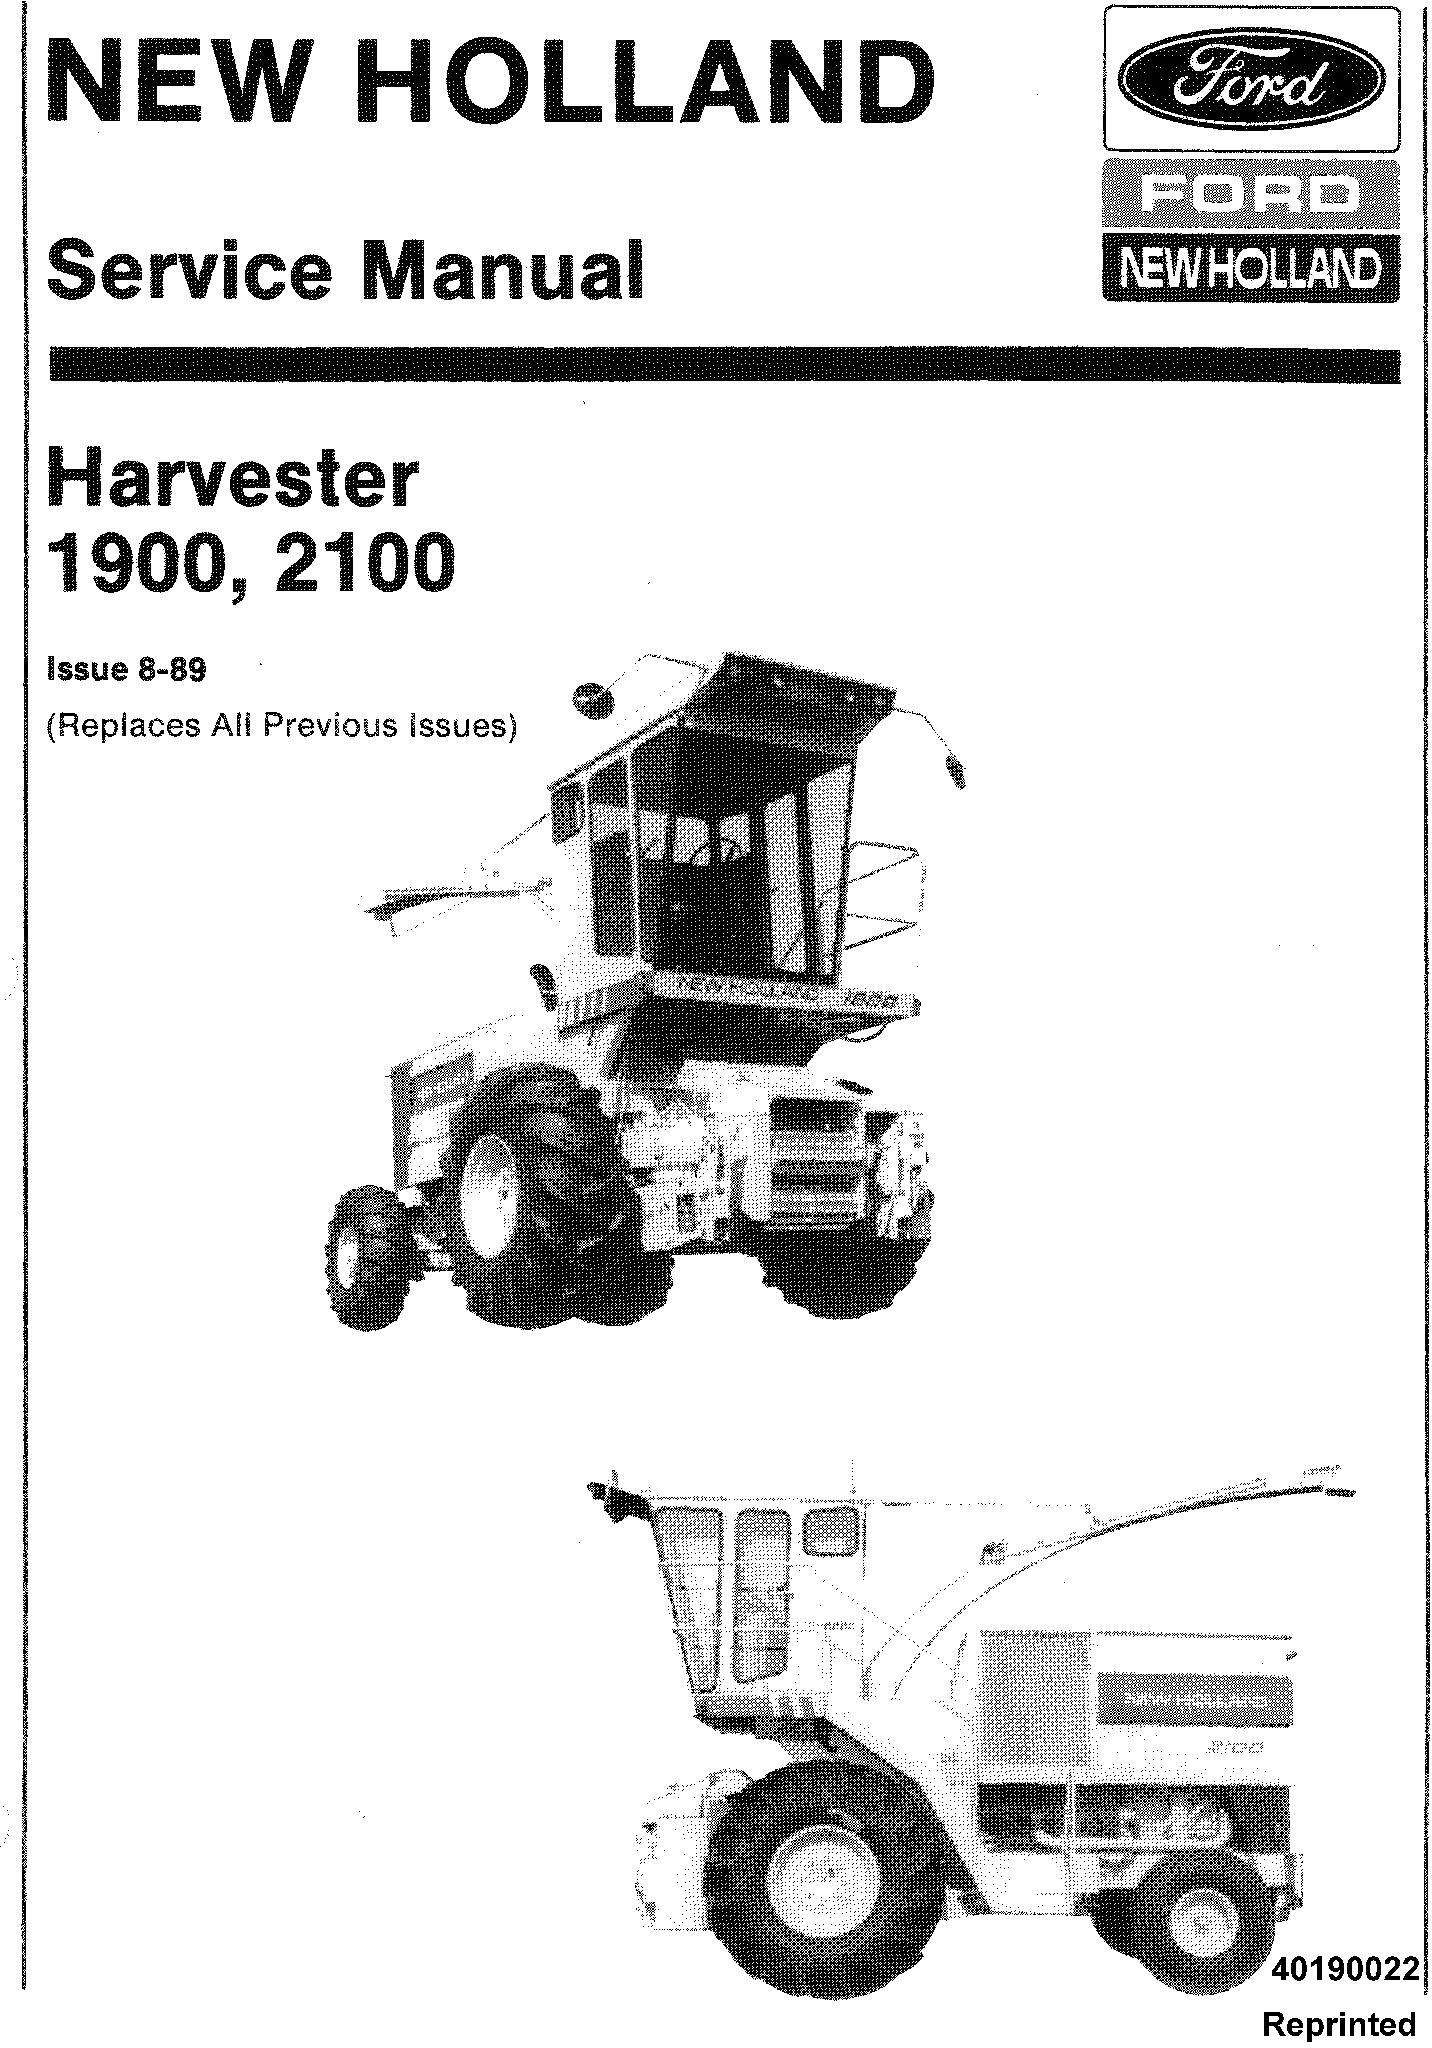 New Holland 1900, 2100 Harvester Service Service Manual